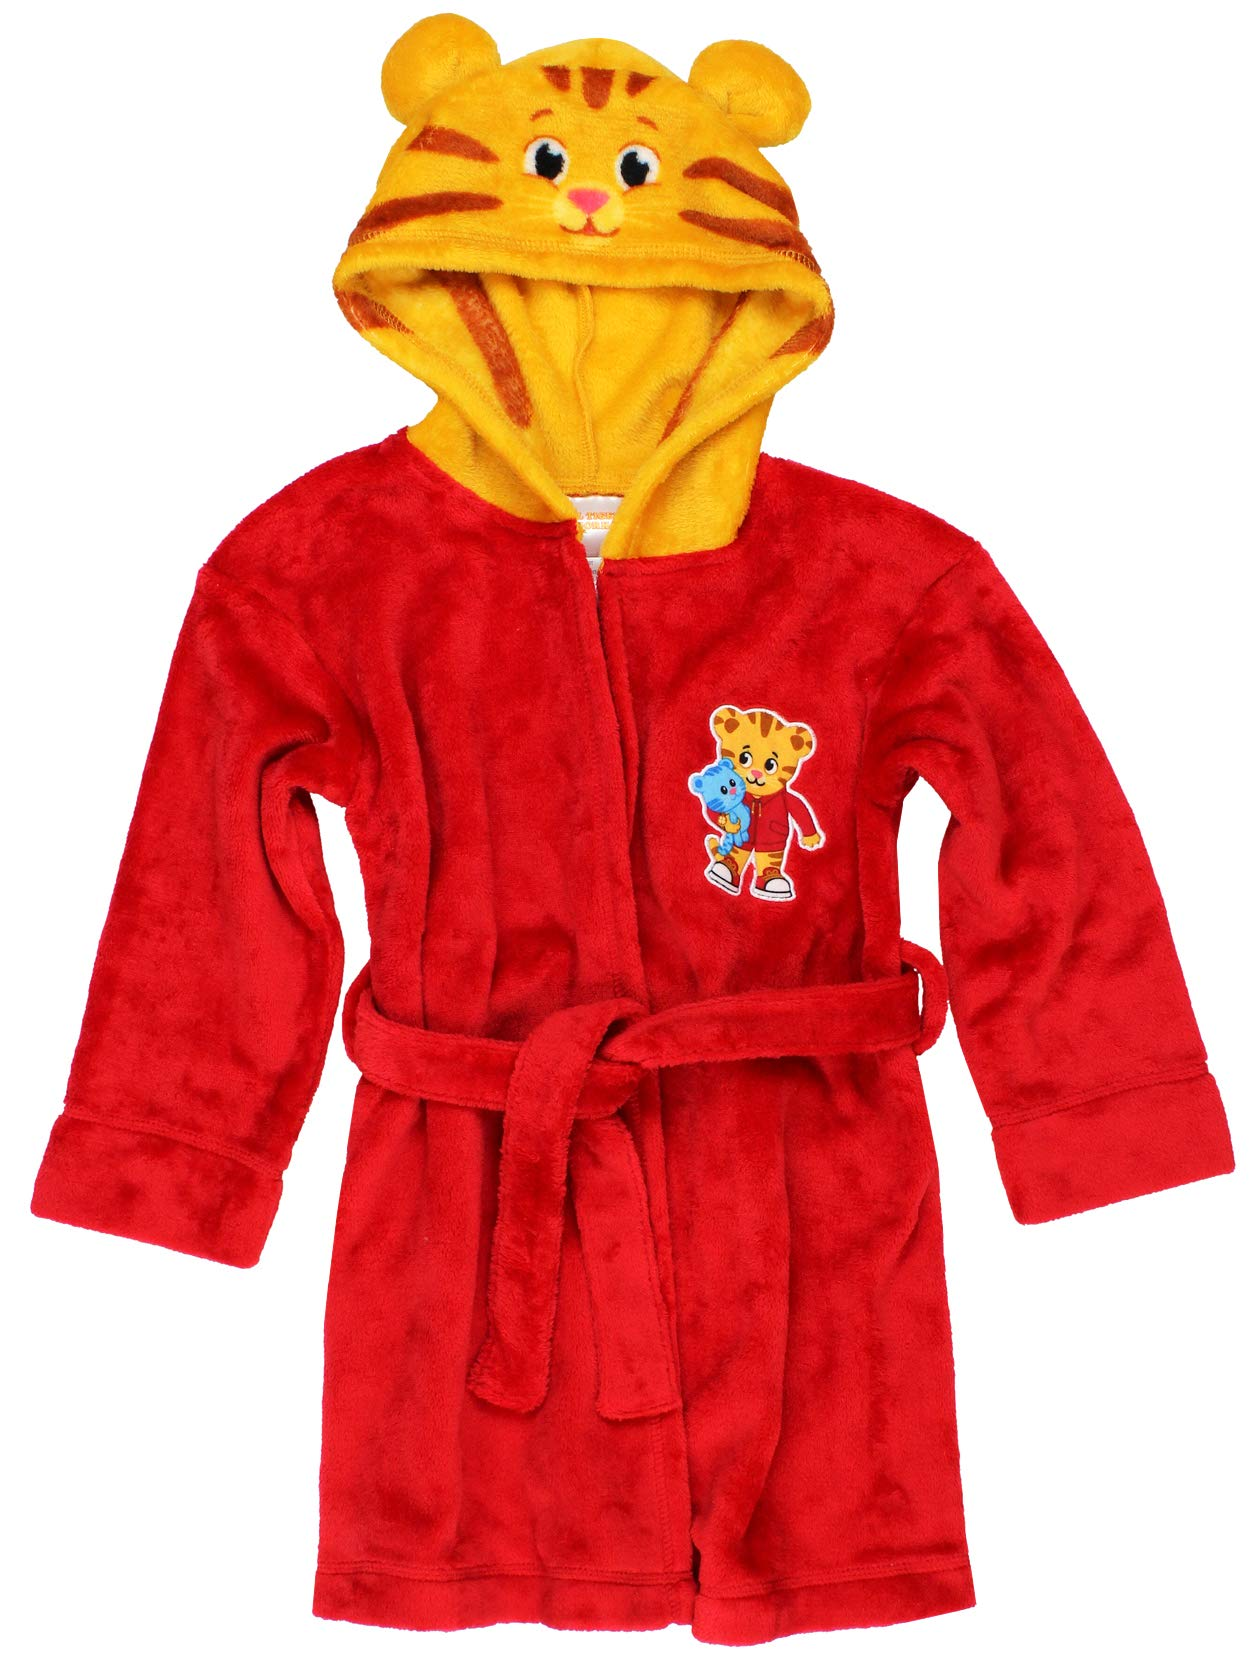 Daniel Tiger Toddler Boys Girls Hooded Plush Fleece Bathrobe Robe with Ears (3T, Red/Gold)